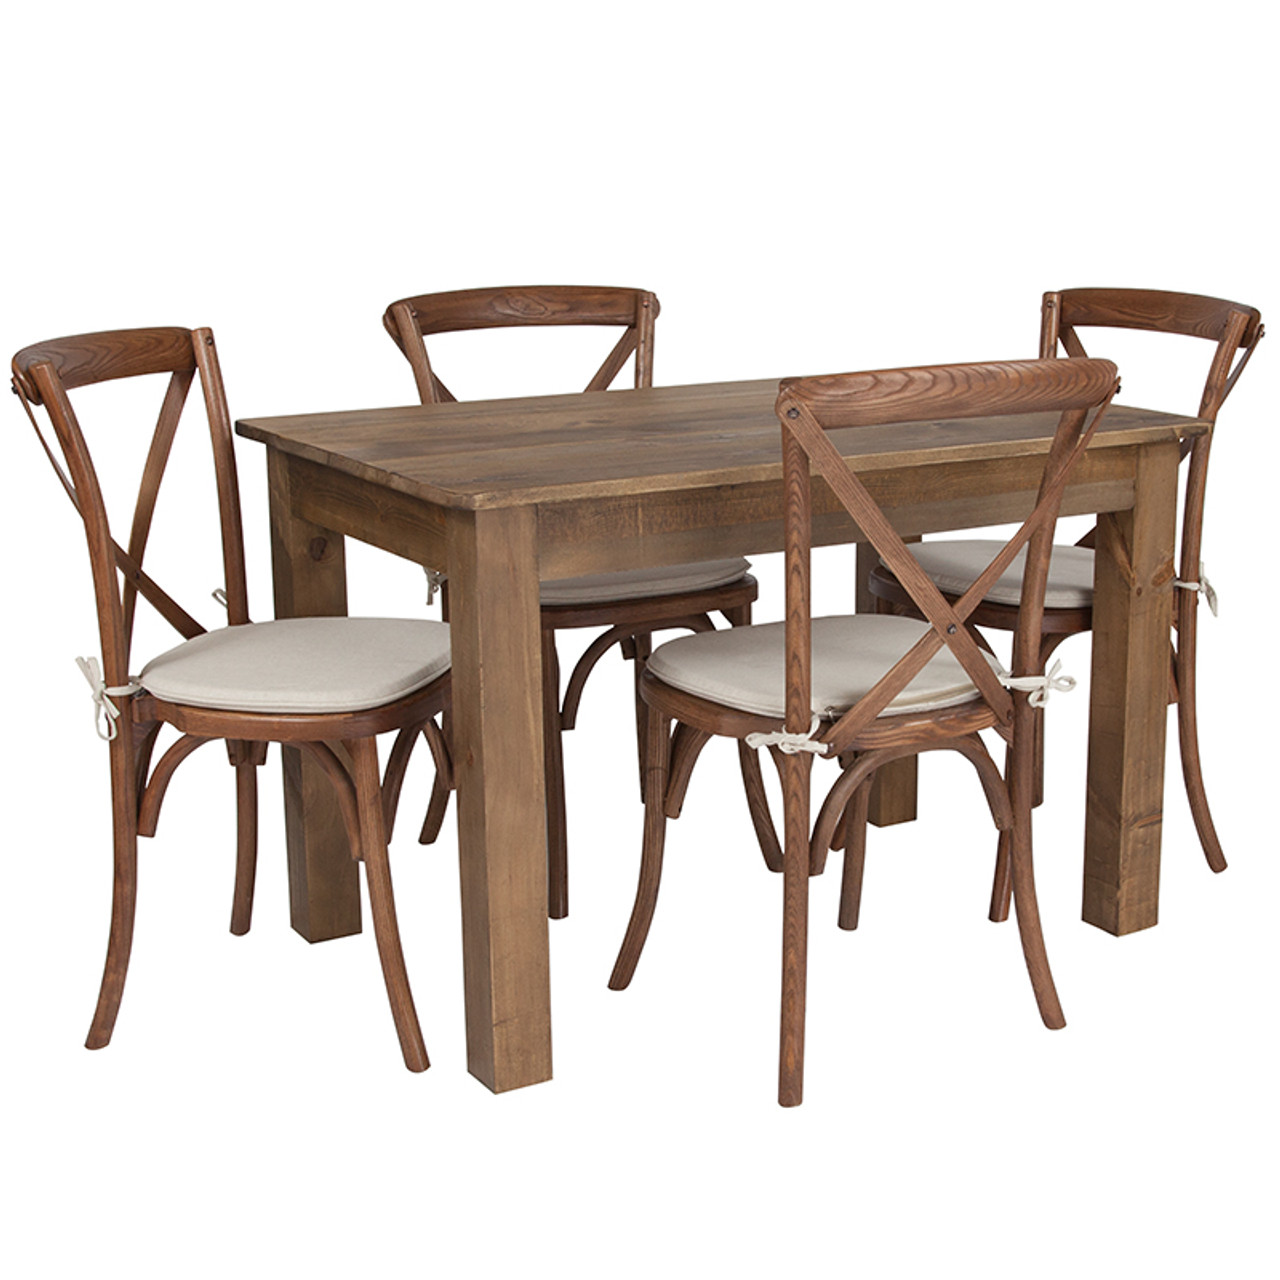 46 X 30 Antique Rustic Farm Table Set With 4 Cross Back Chairs And